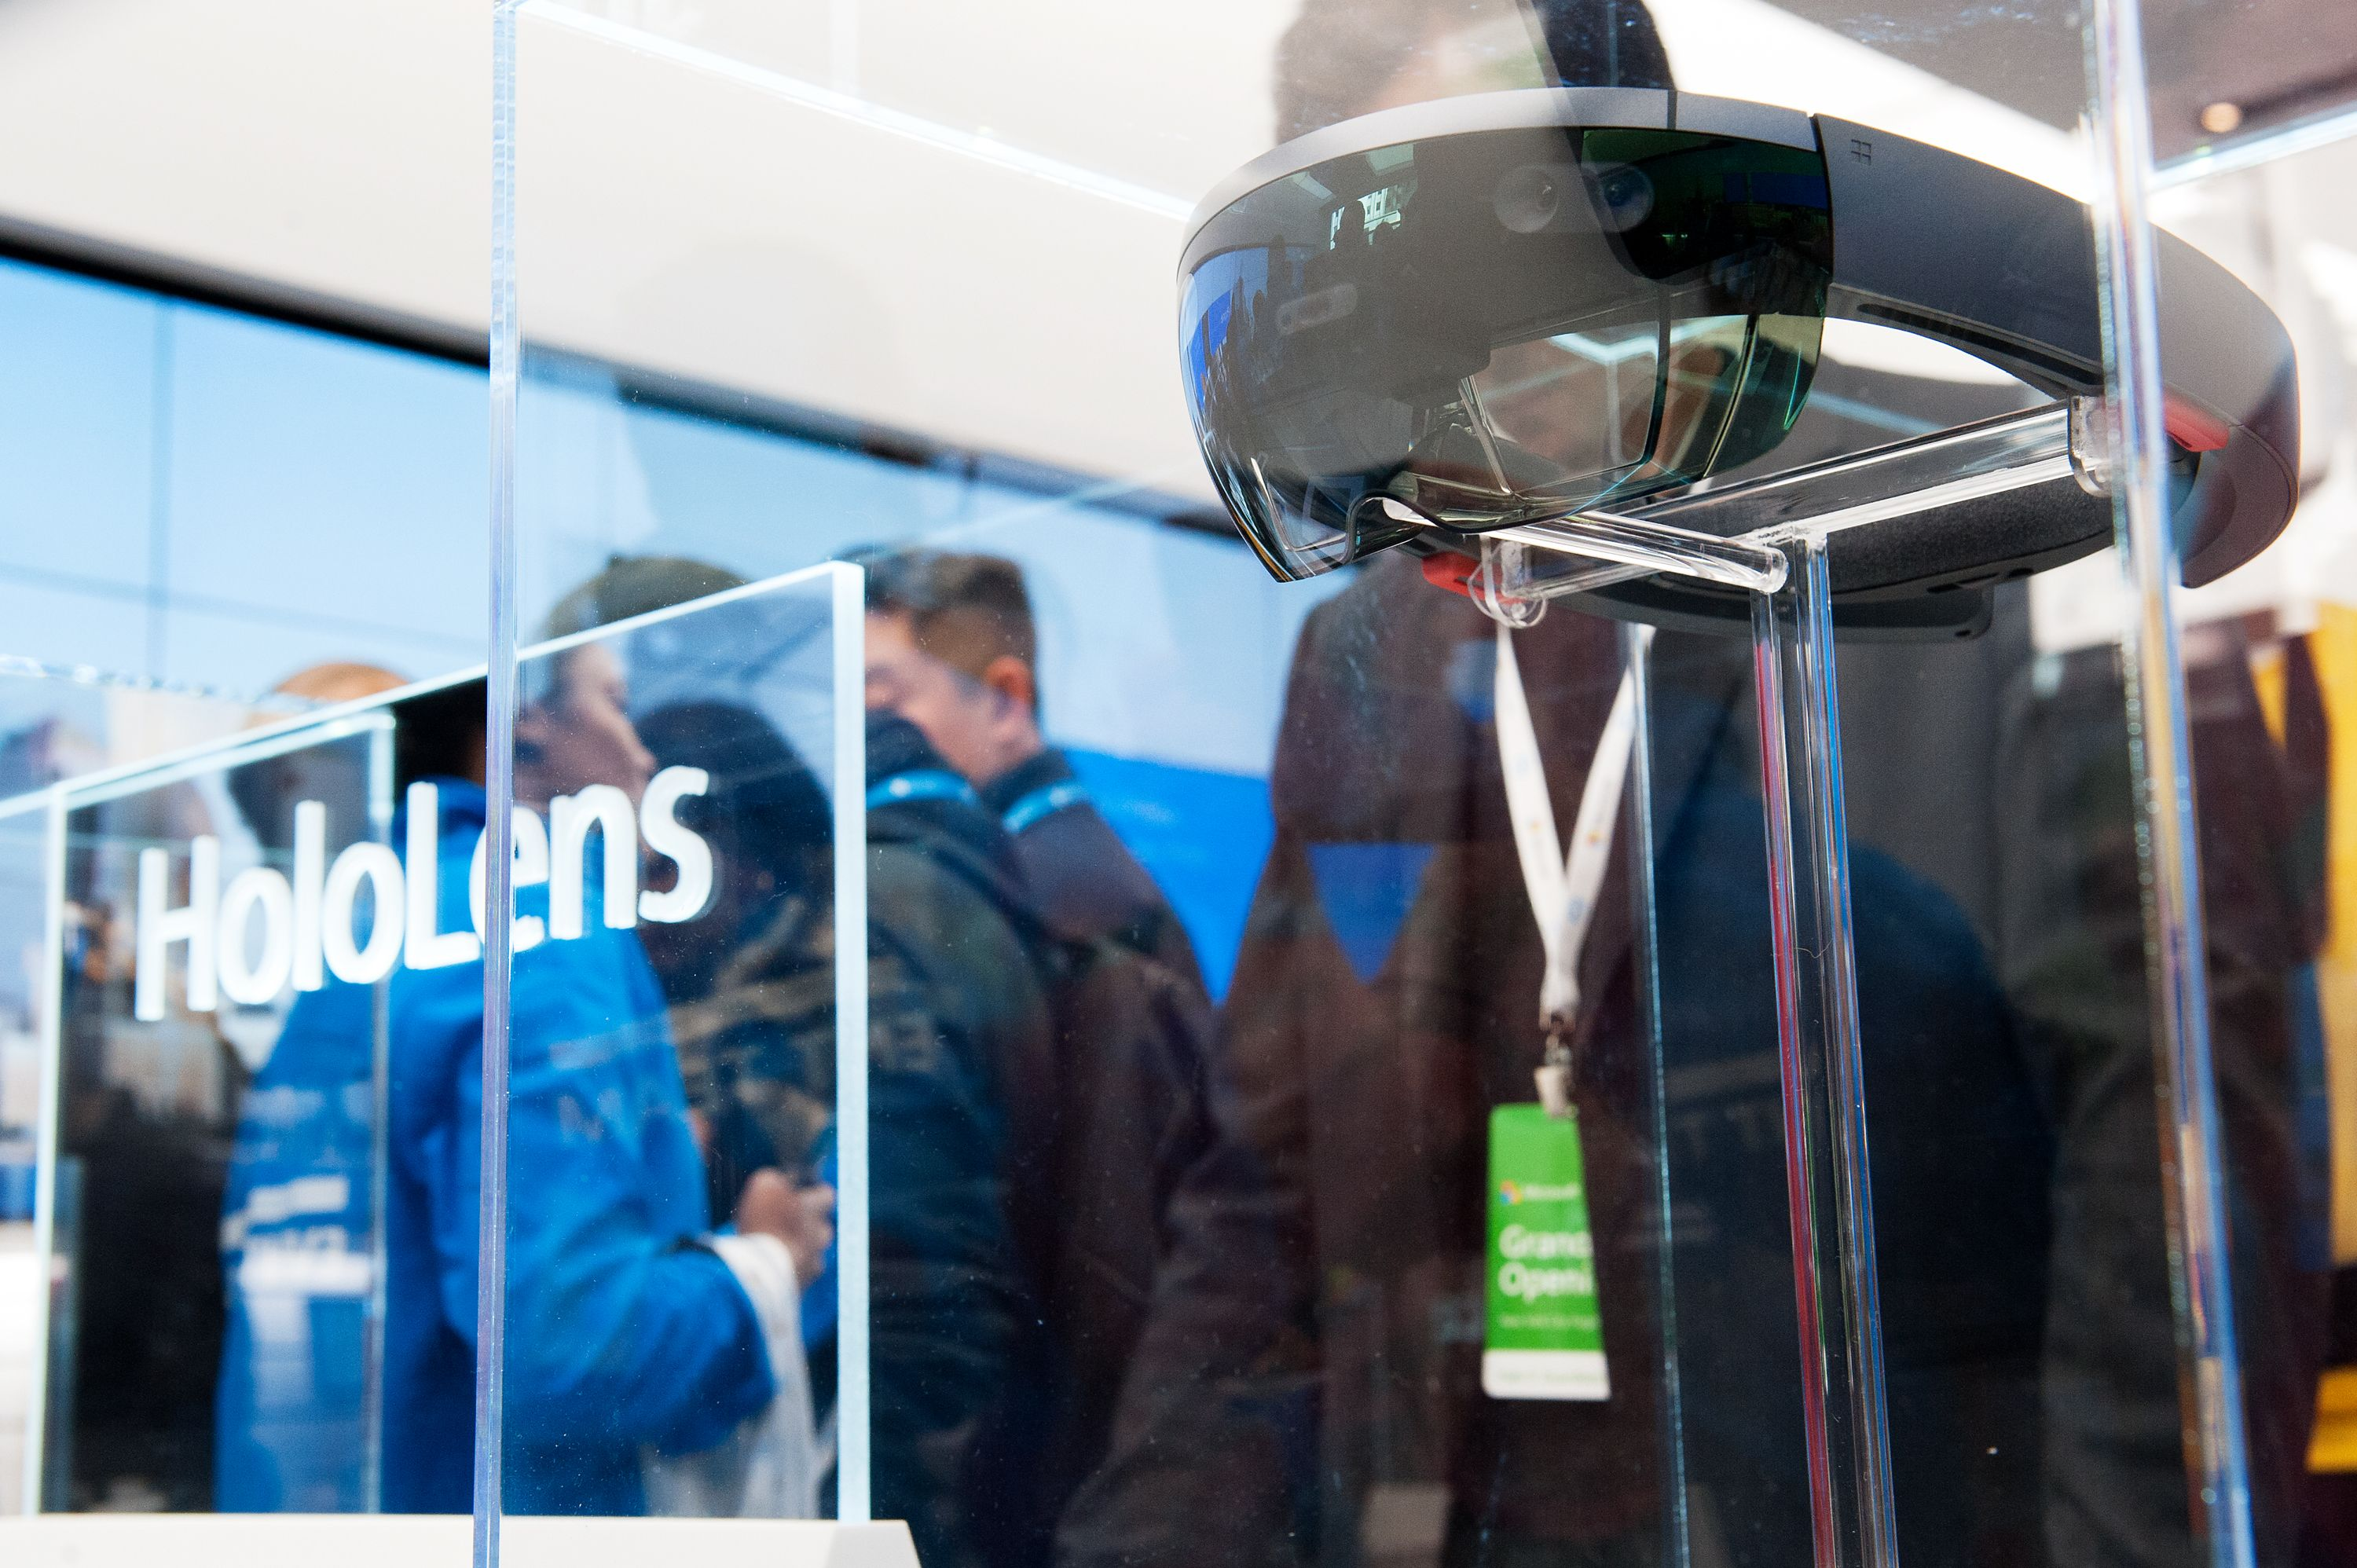 Microsoft Selling 100,000 HoloLens to U.S Army for $479 Million